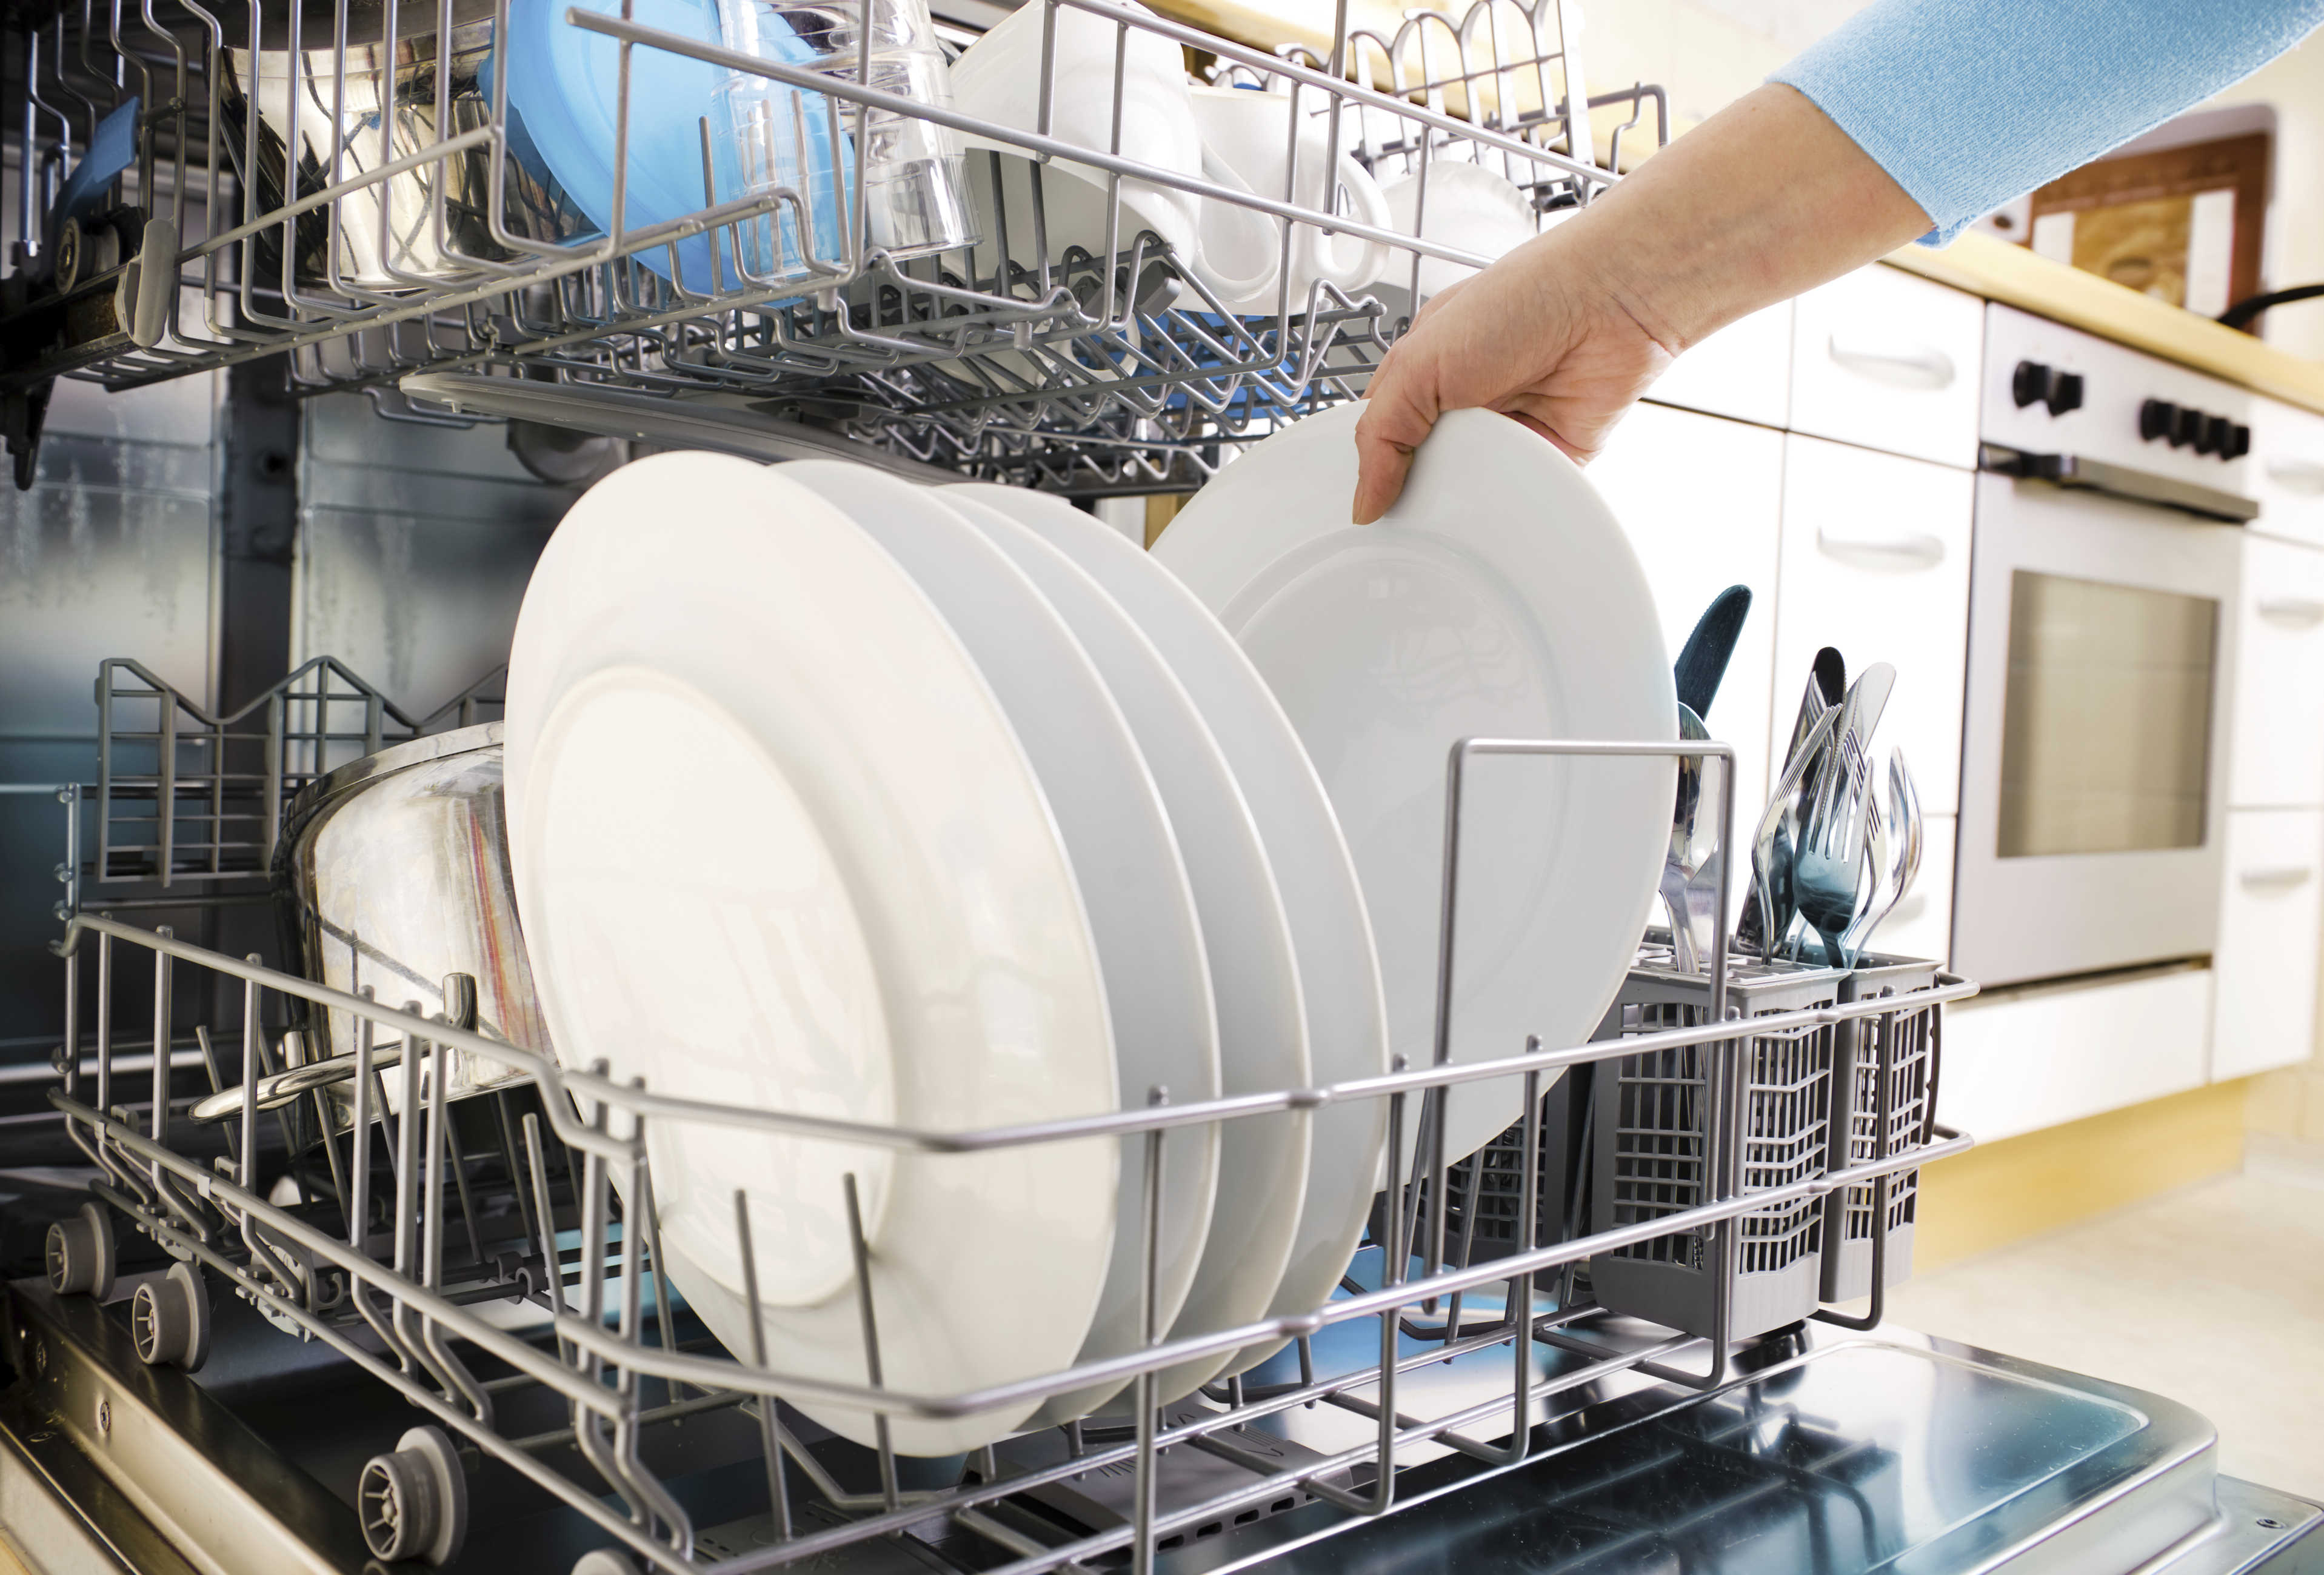 Are You Loading the Dishwasher the Right Way?